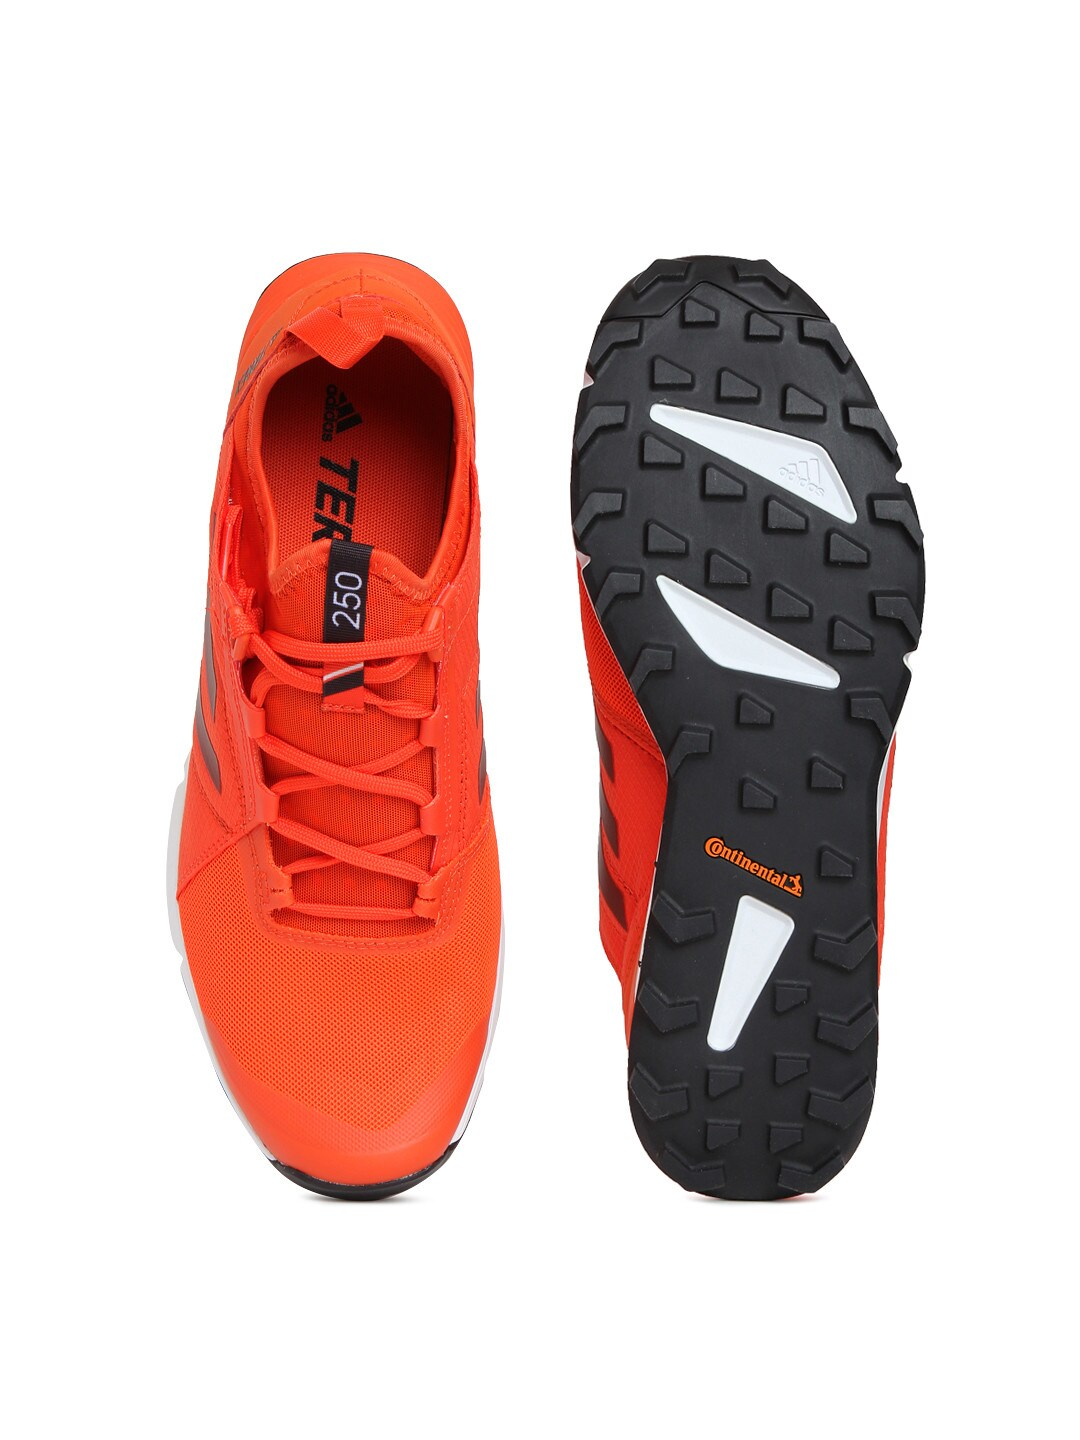 Adidas Terrex Sports Shoes Buy Adidas Terrex Sports Shoes online in India